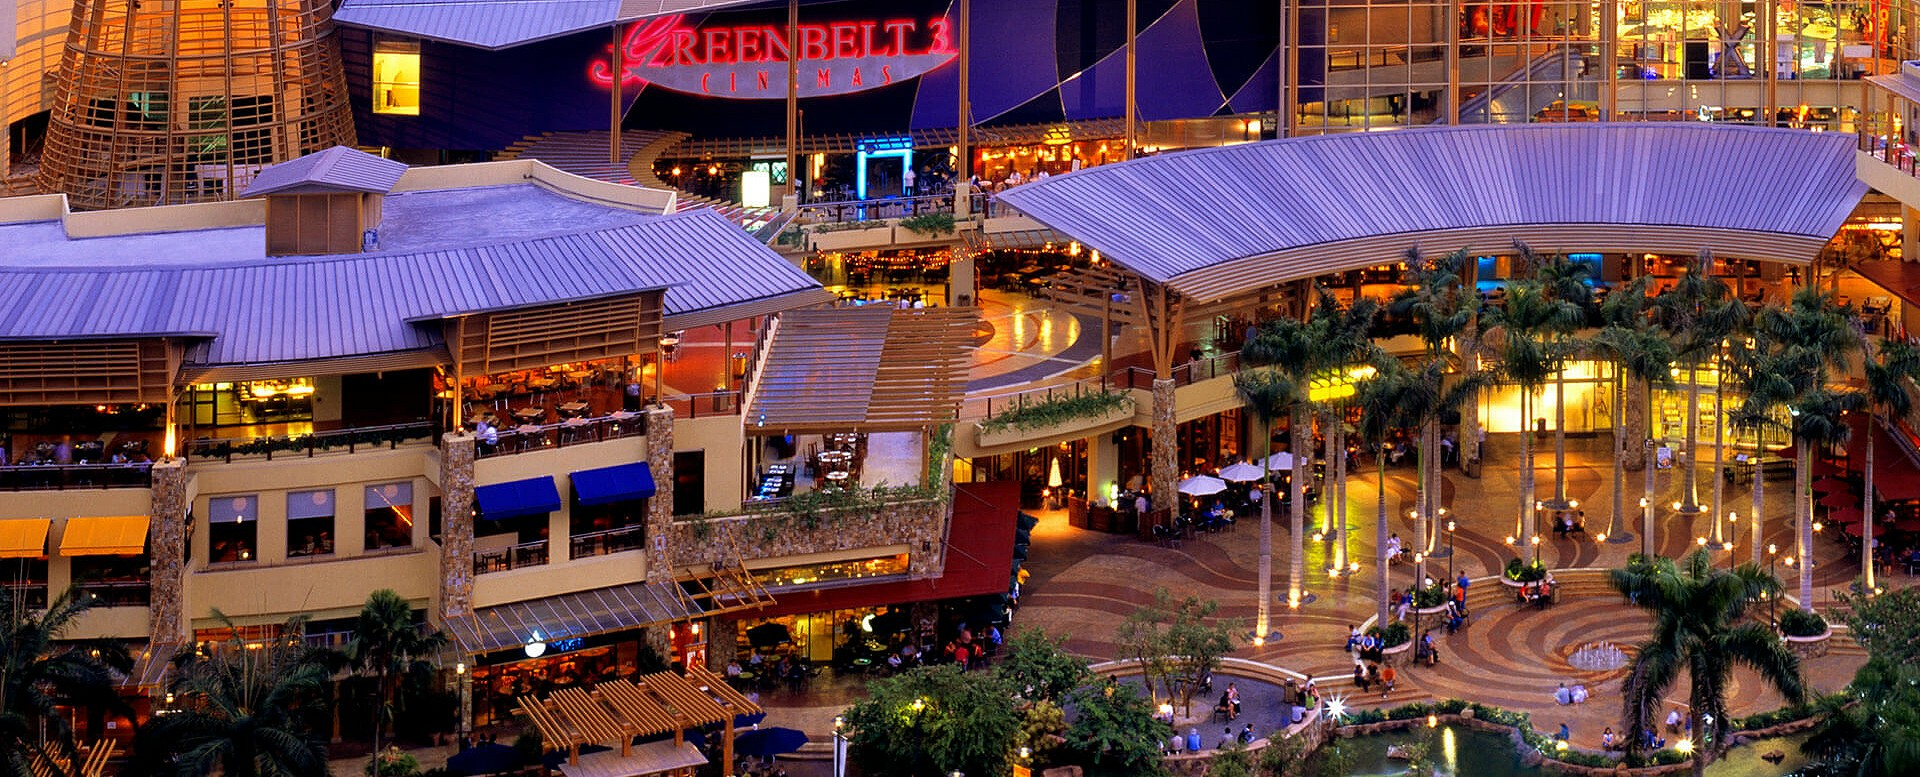 Greenbelt Mall